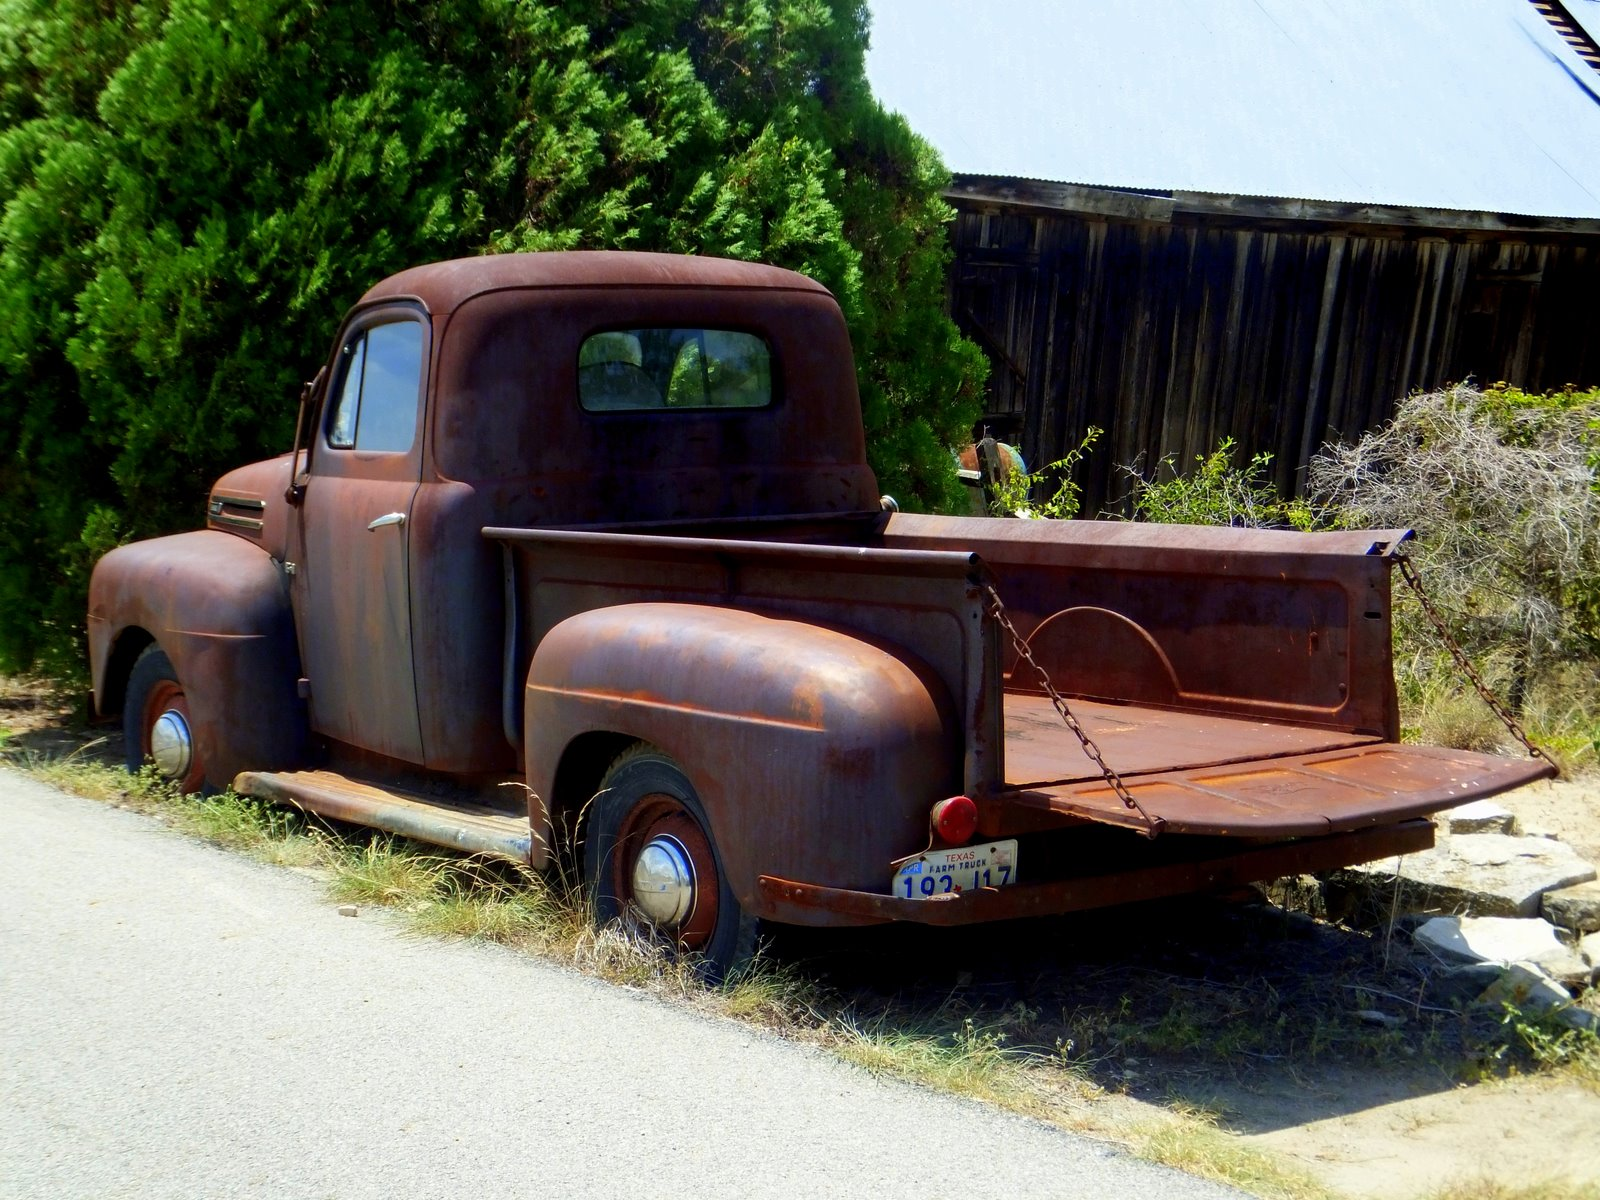 Grit in the Gears: Rusty Old Truck Post No1